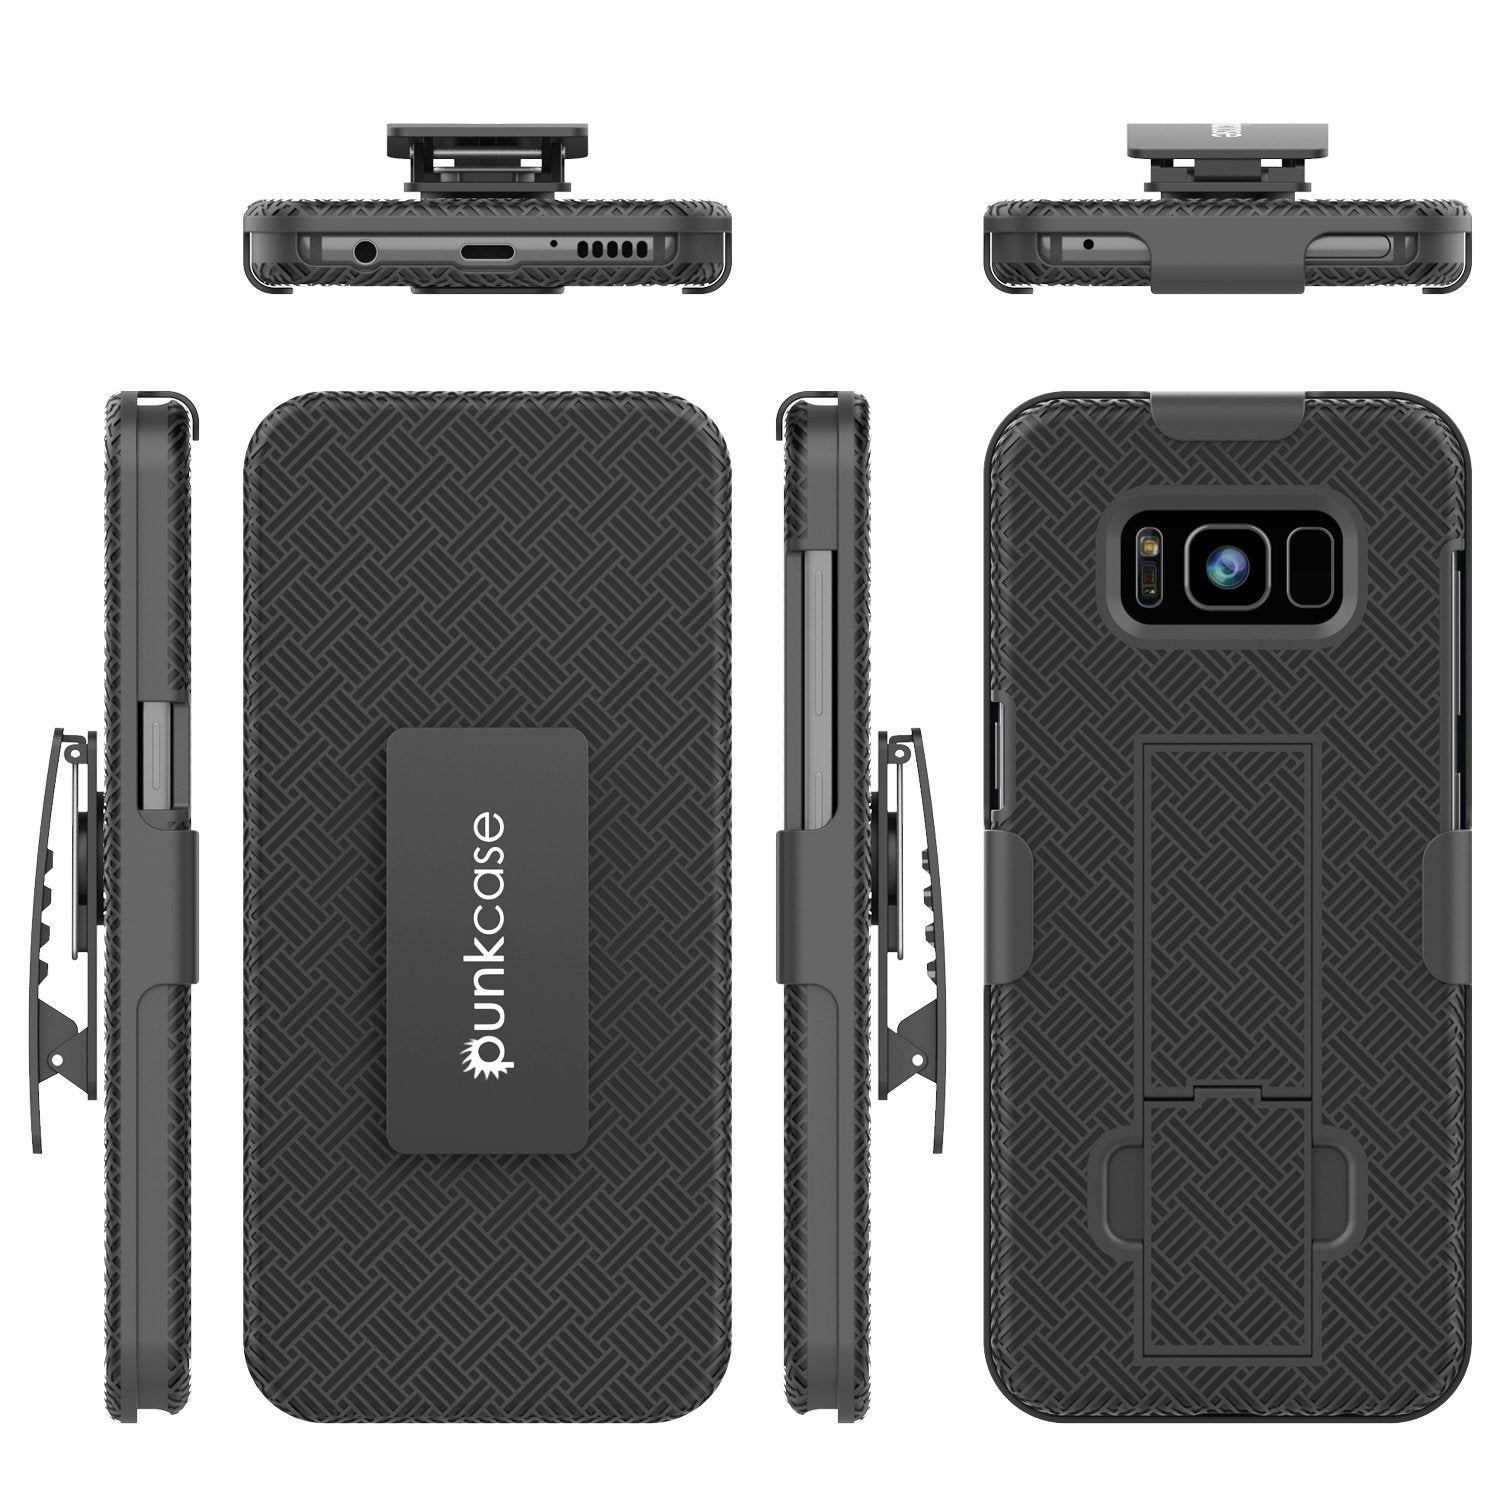 Punkcase Galaxy S8+ Plus Case, With PunkShield Glass Screen Protector, Holster Belt Clip [Black]